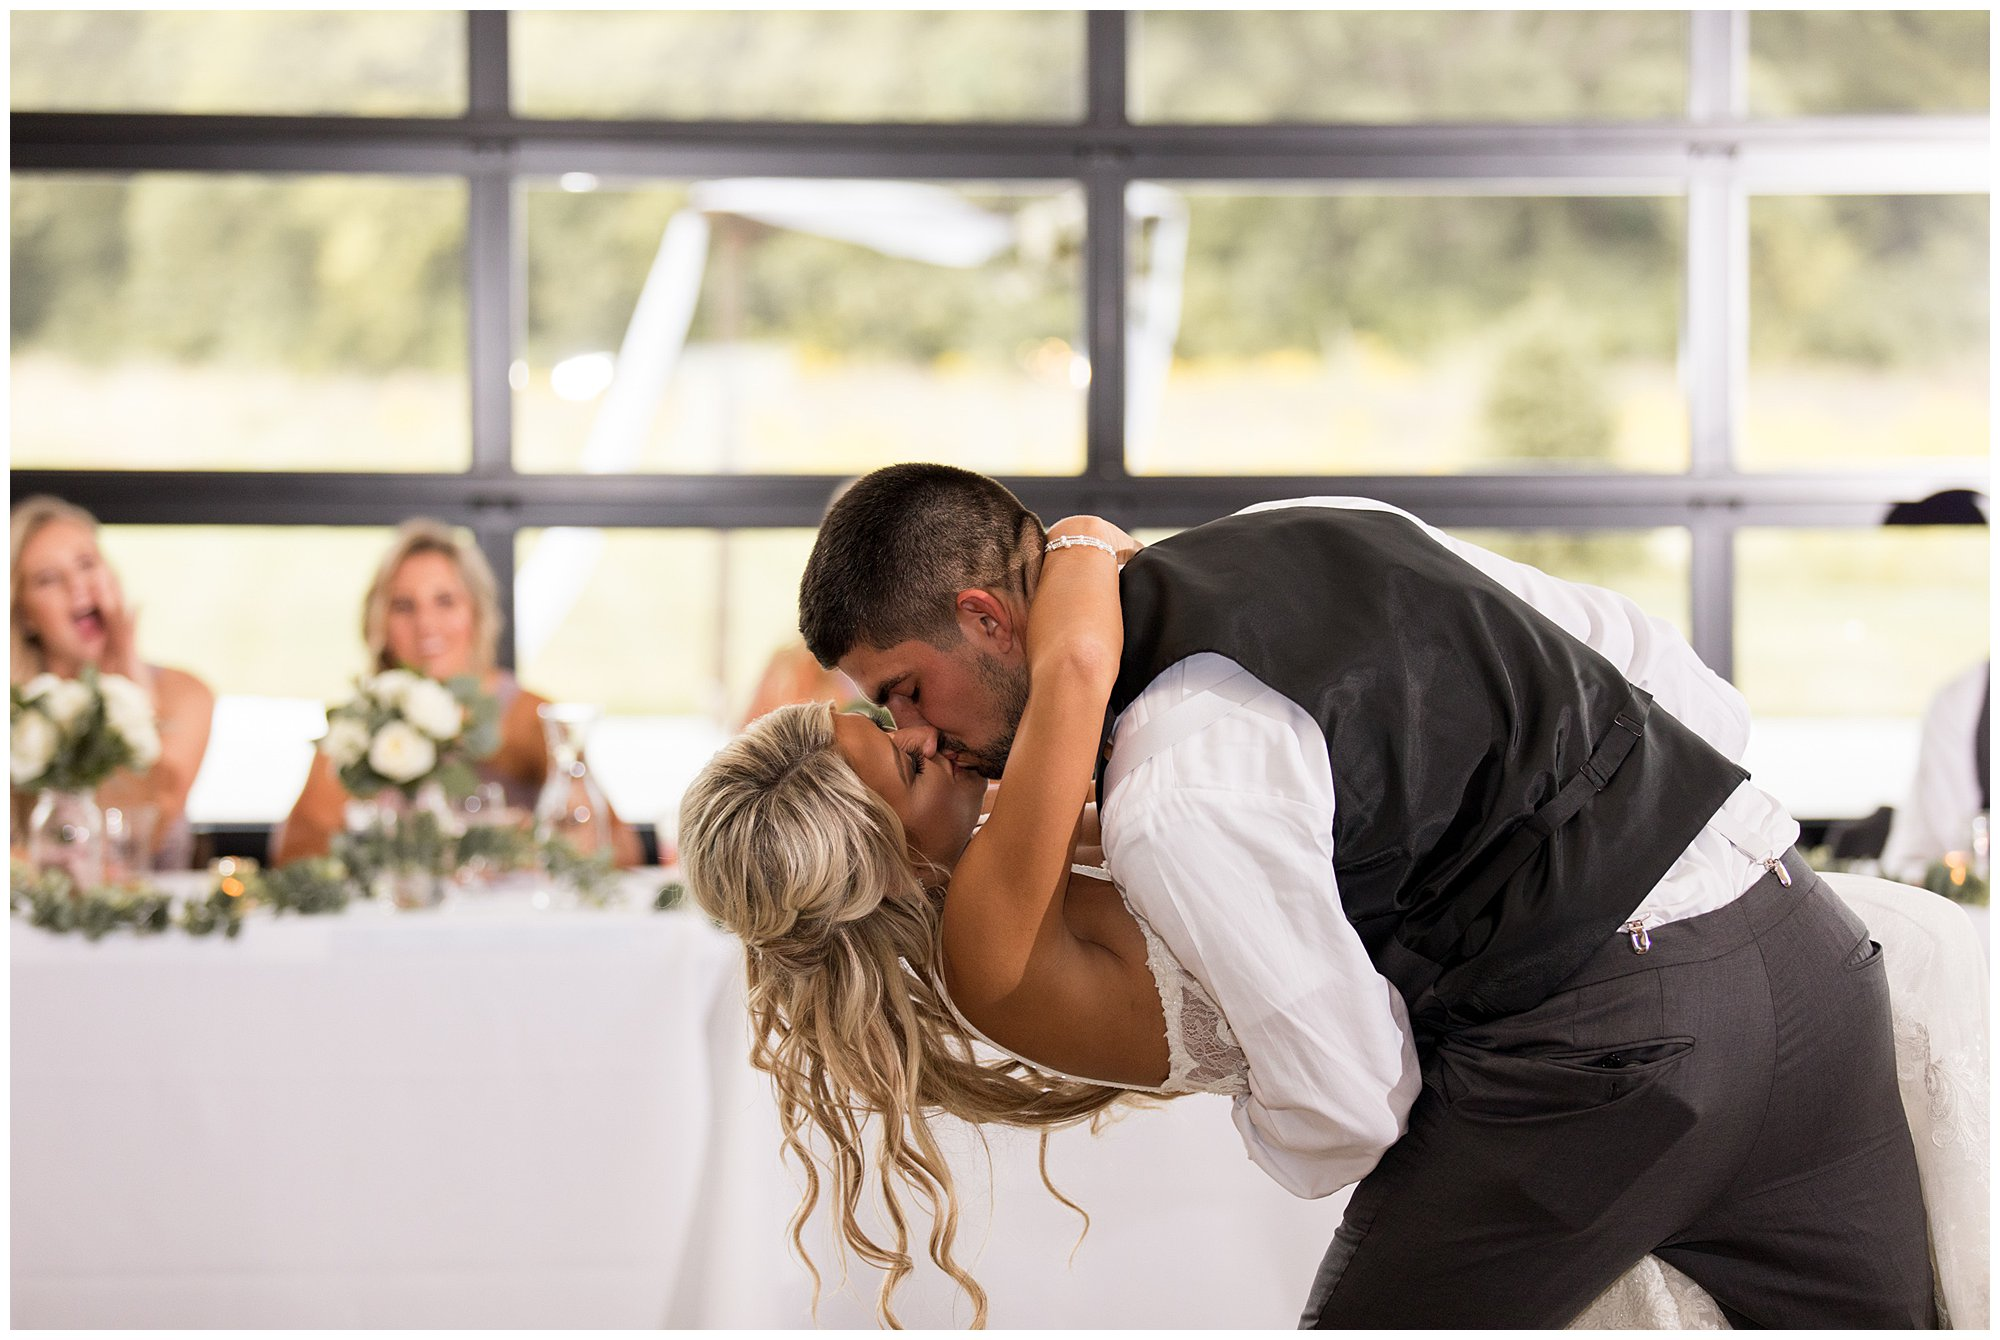 groom dips bride at end of first dance at Union 12 wedding reception